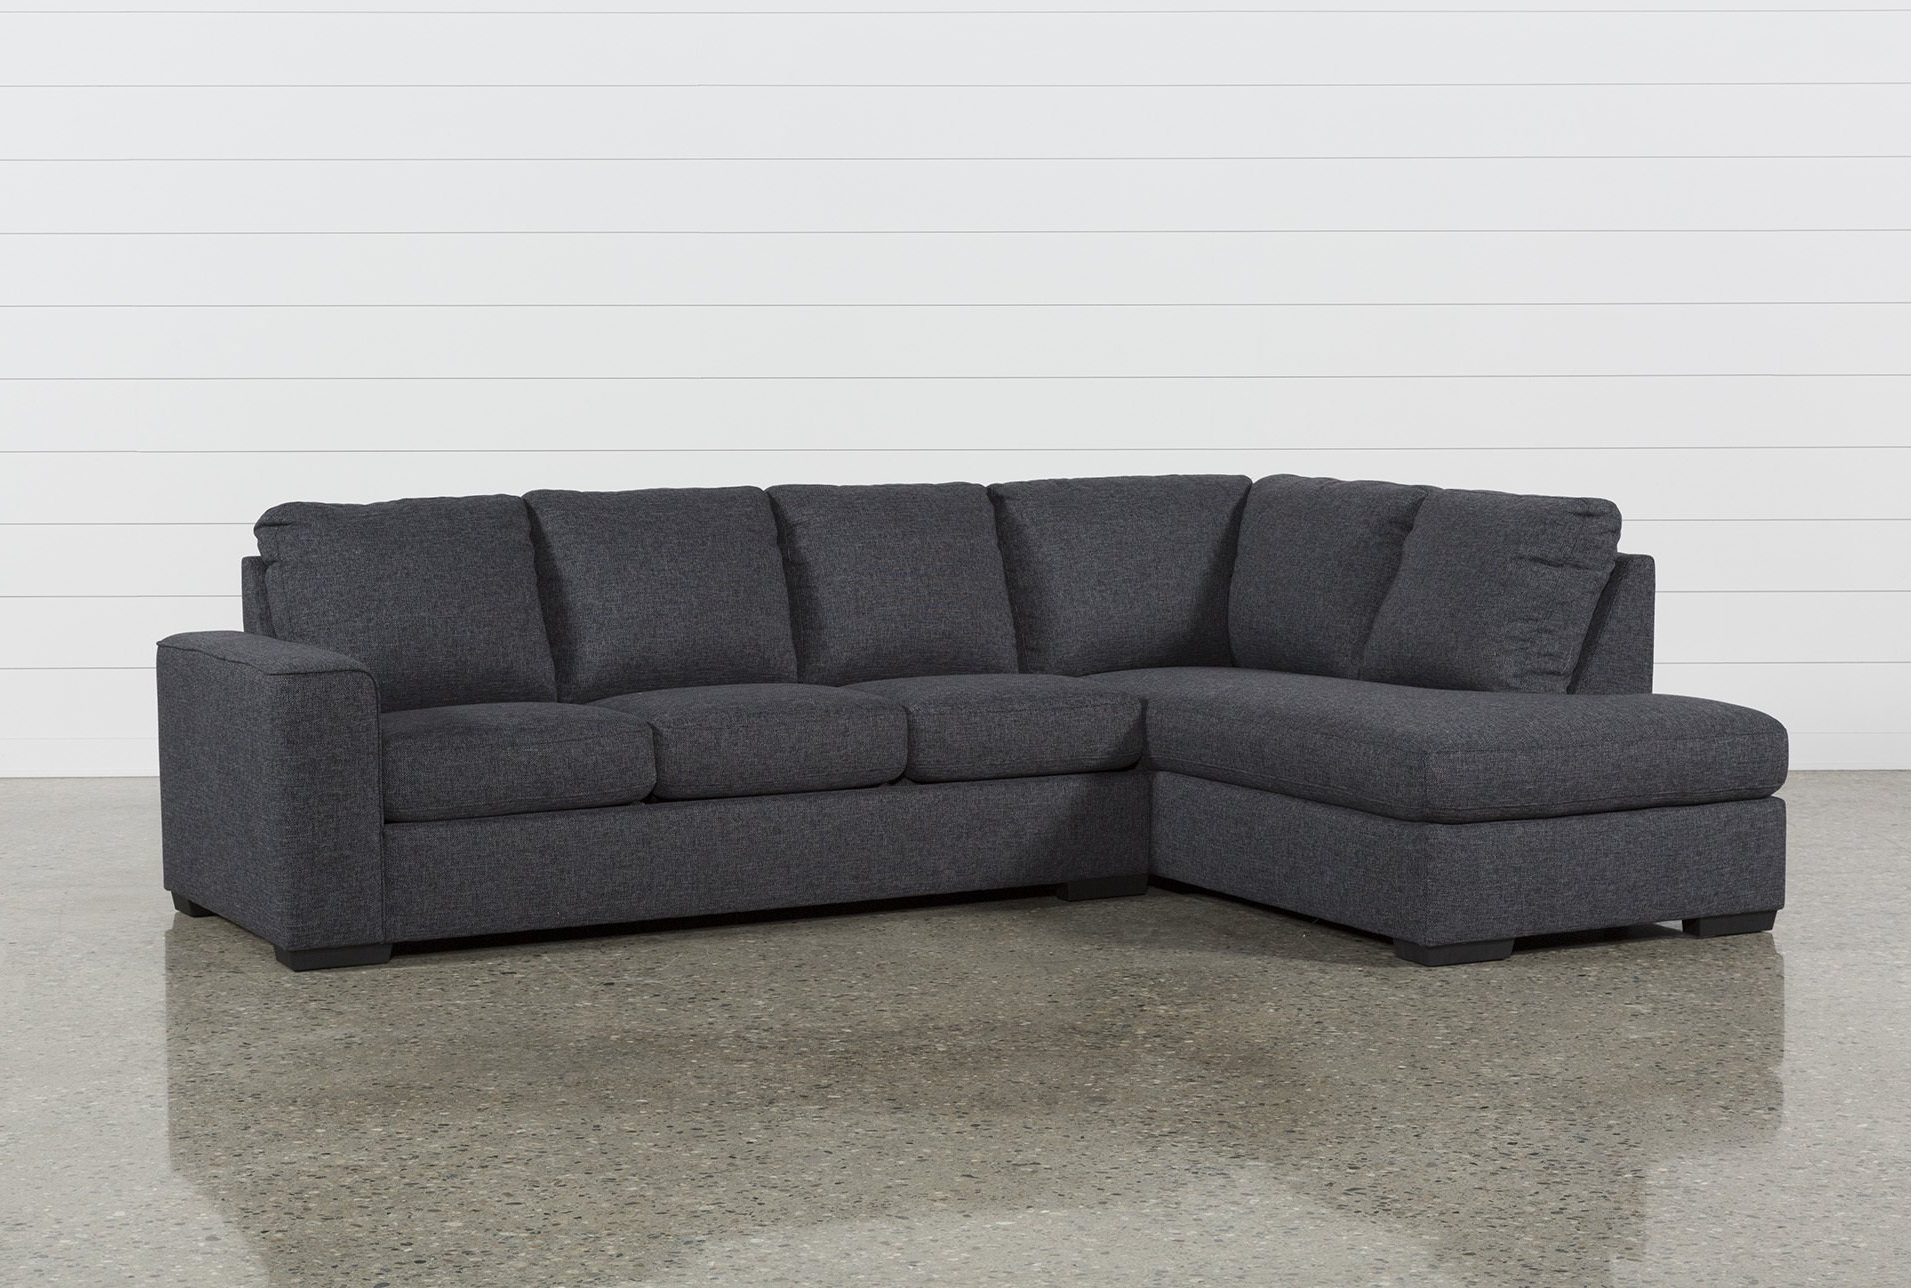 Dark Grey And Products Intended For Preferred Aspen 2 Piece Sleeper Sectionals With Laf Chaise (Gallery 4 of 20)